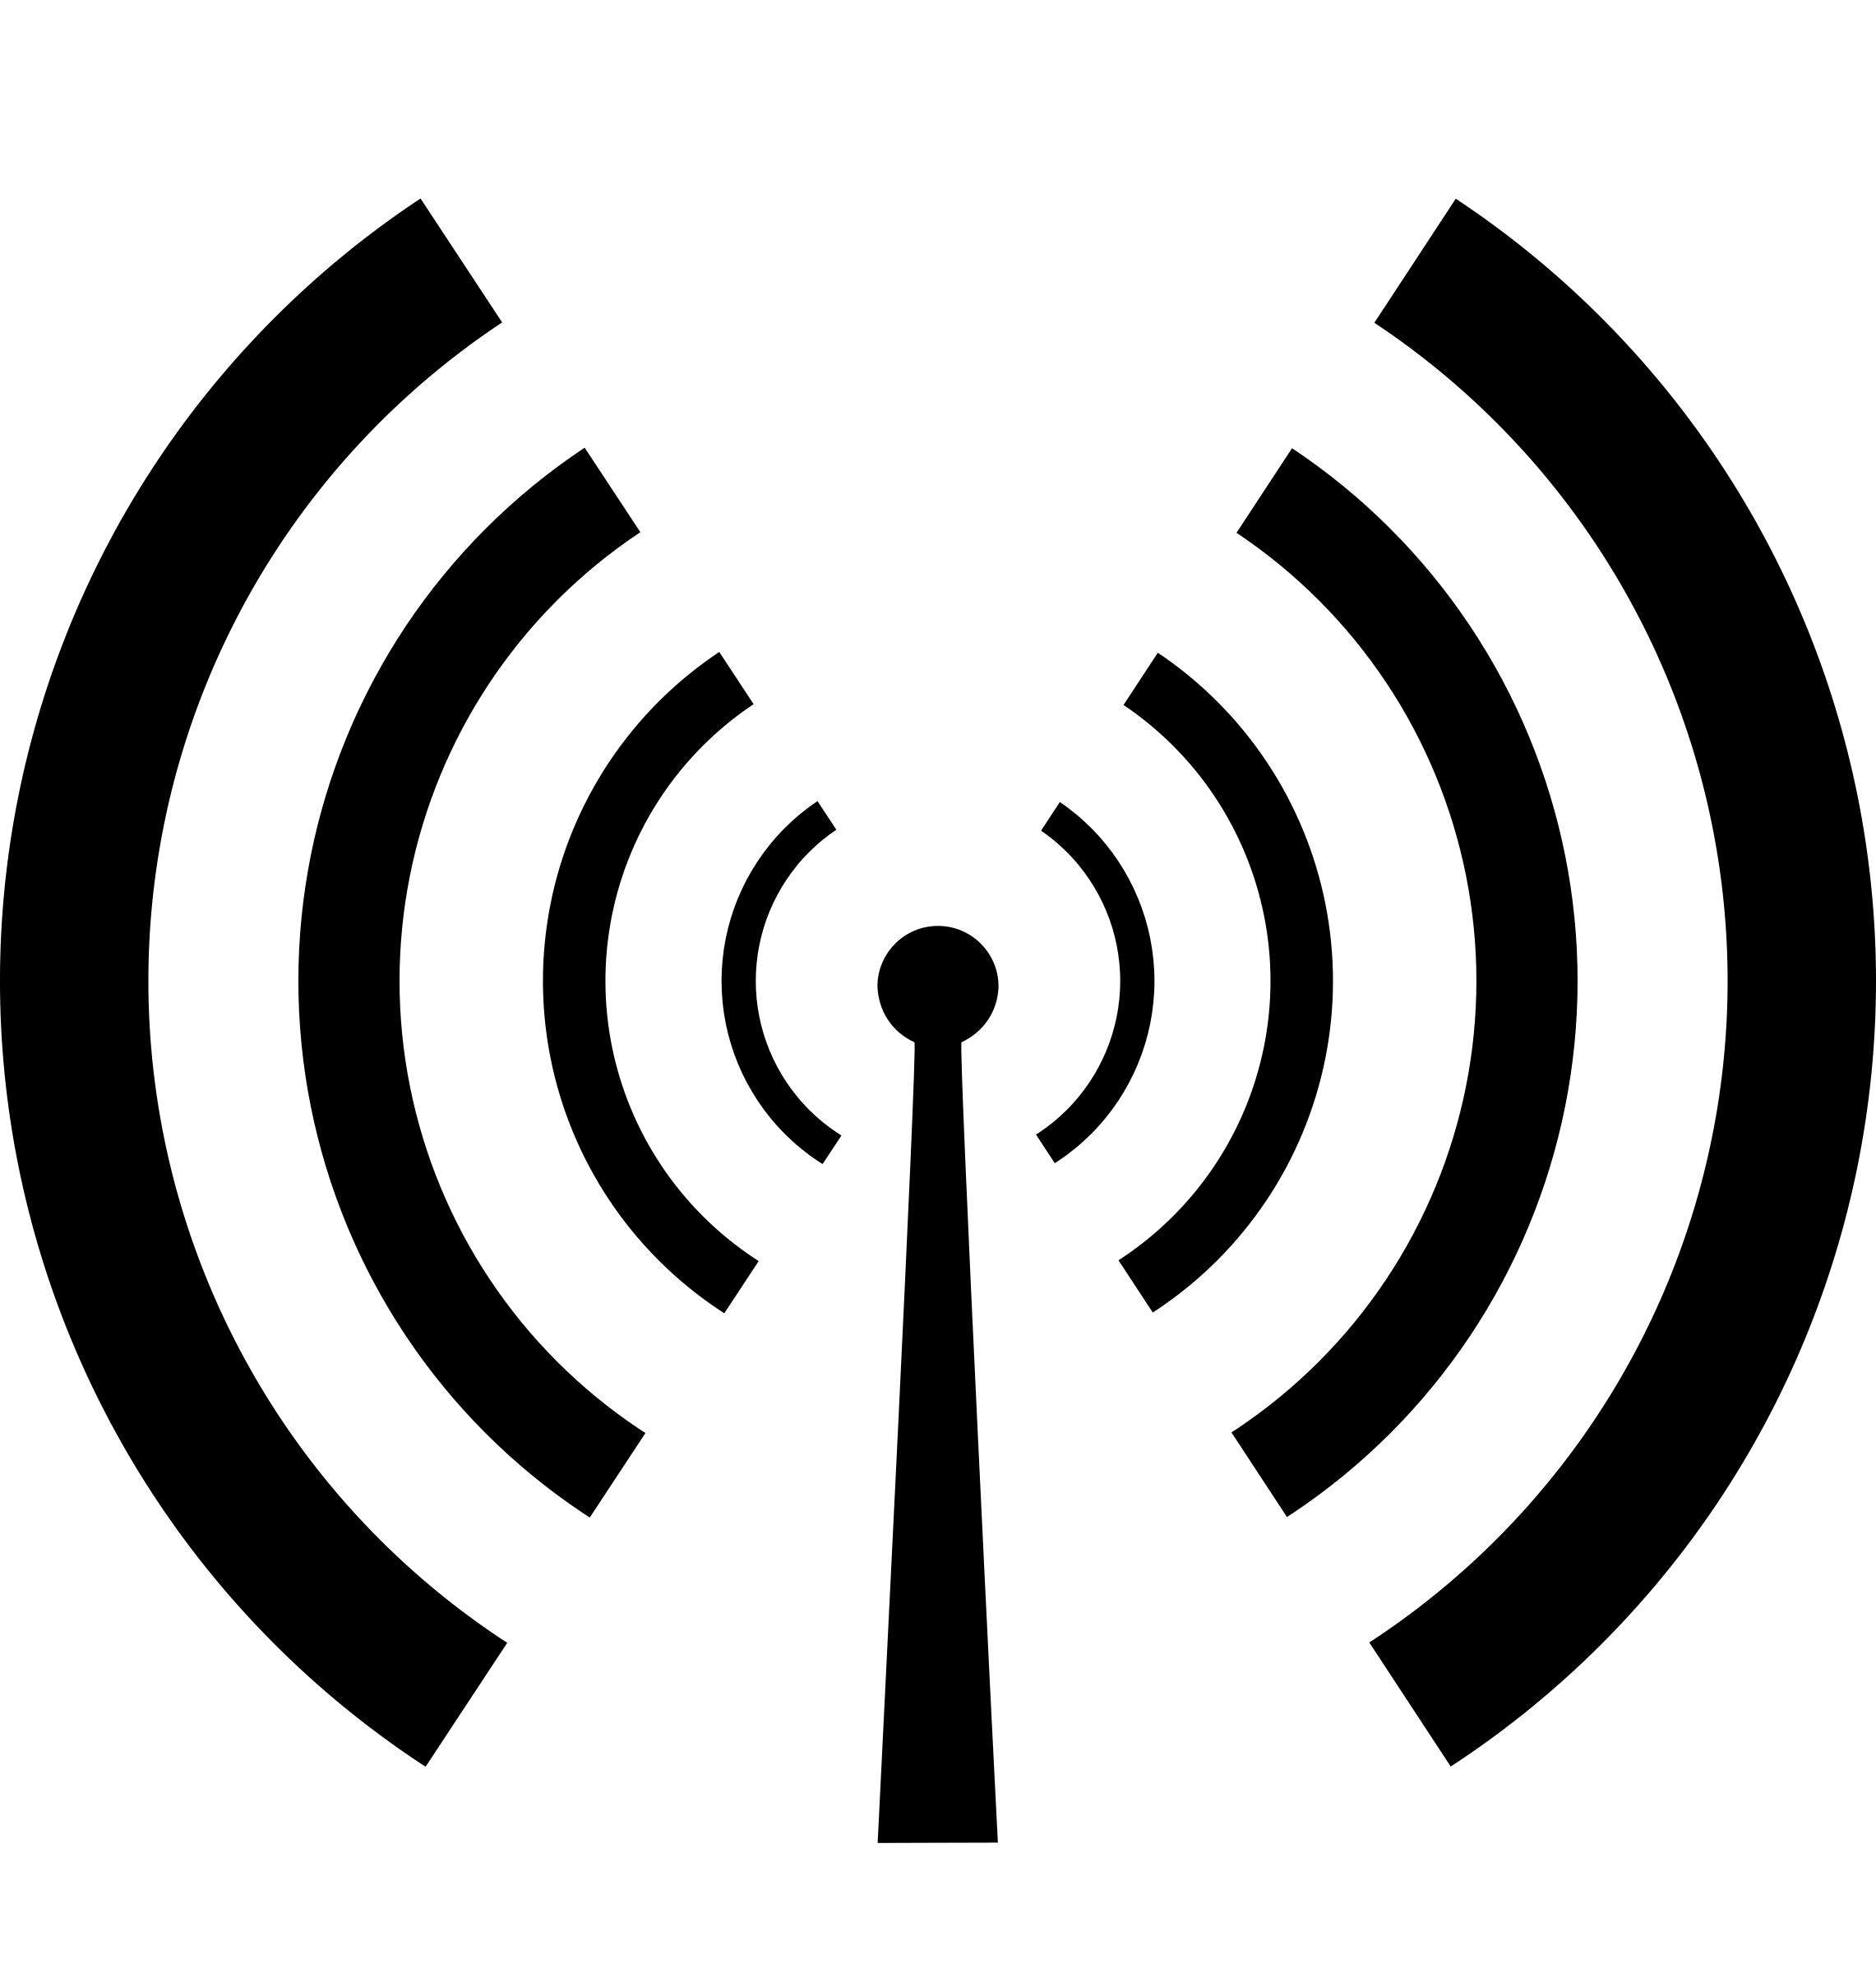 johnpwarren-Antenna-and-radio-waves